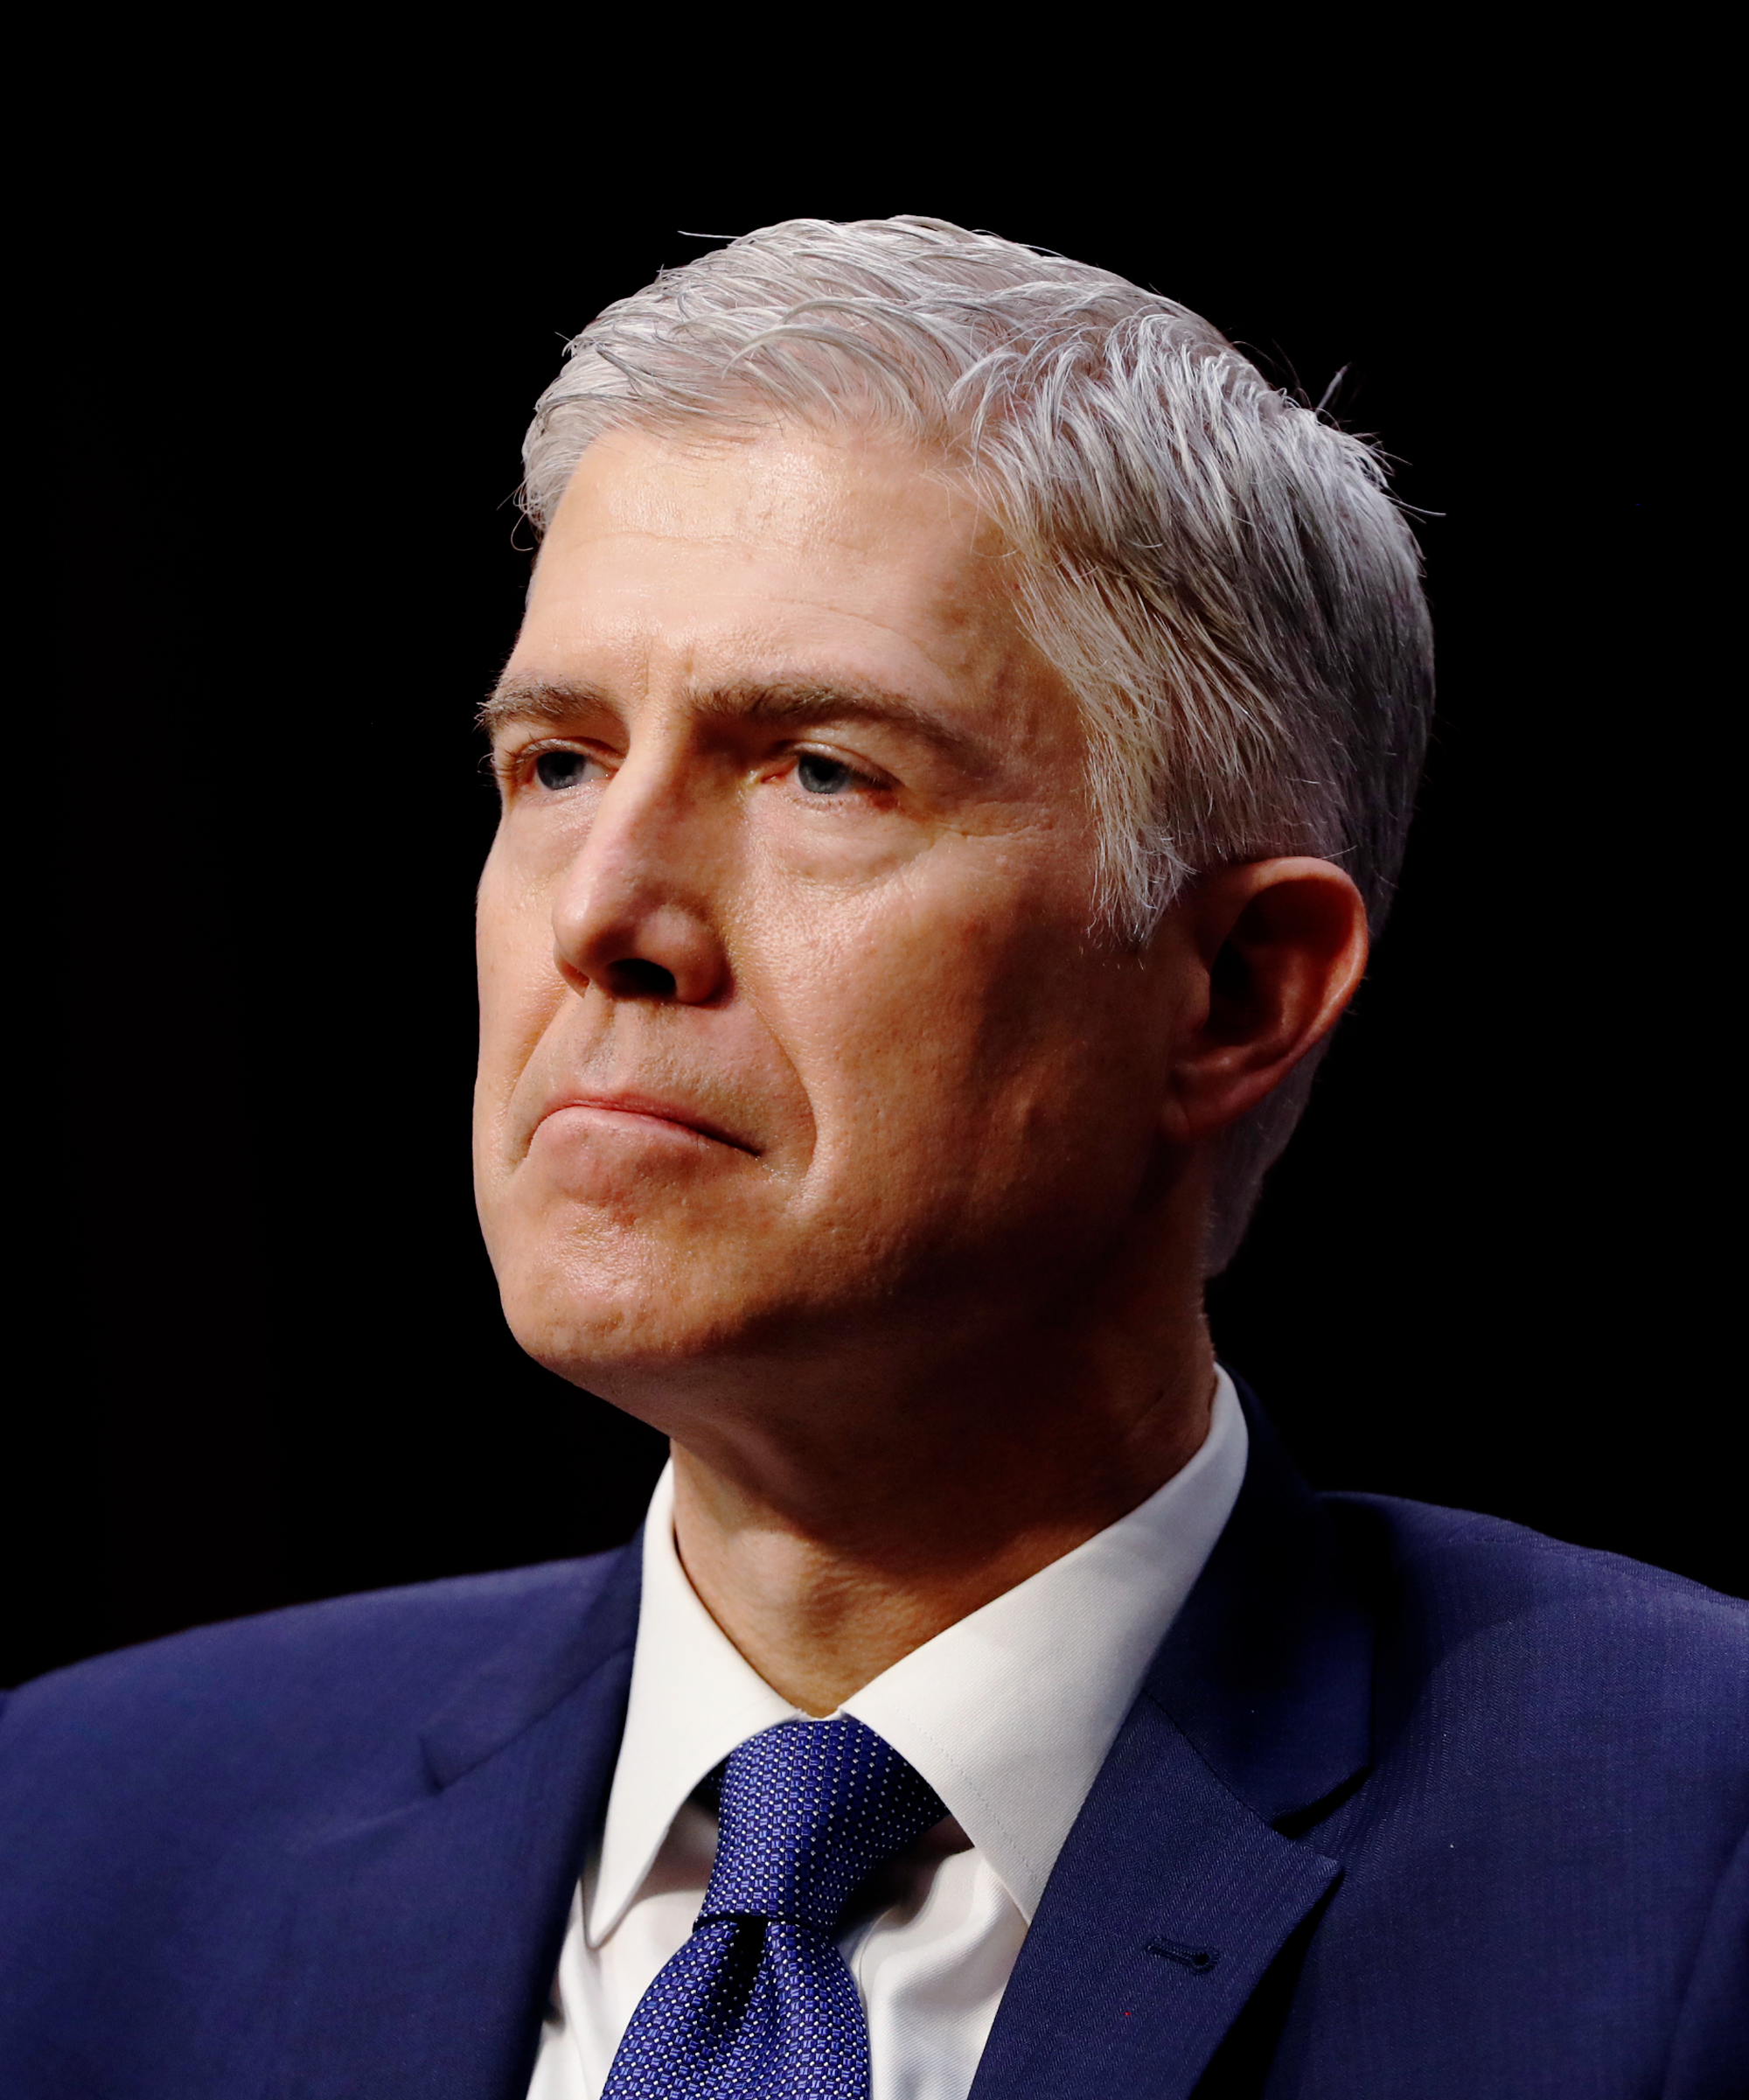 Neil Gorsuch confirmed by Senate as Supreme Court justice